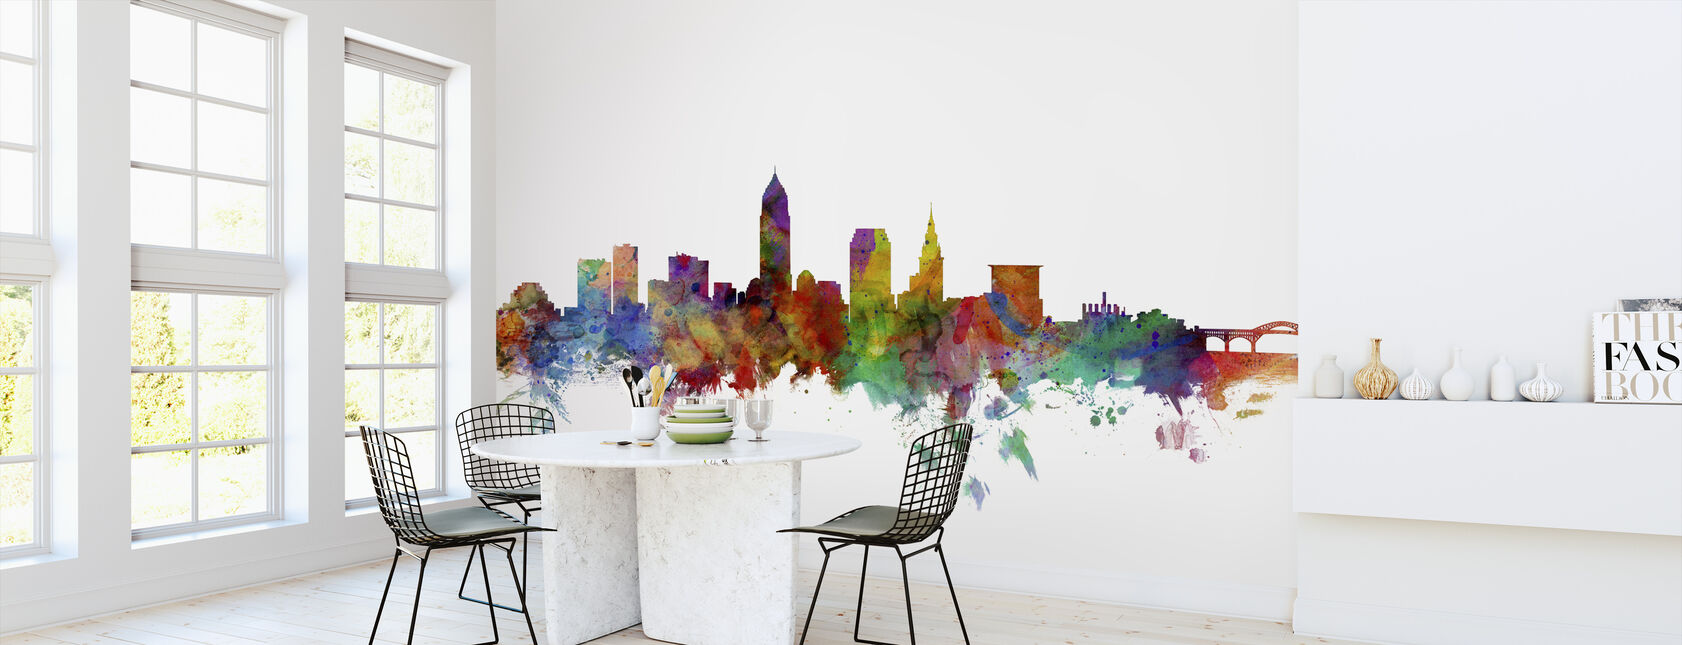 Cleveland Ohio Skyline - Wallpaper - Kitchen